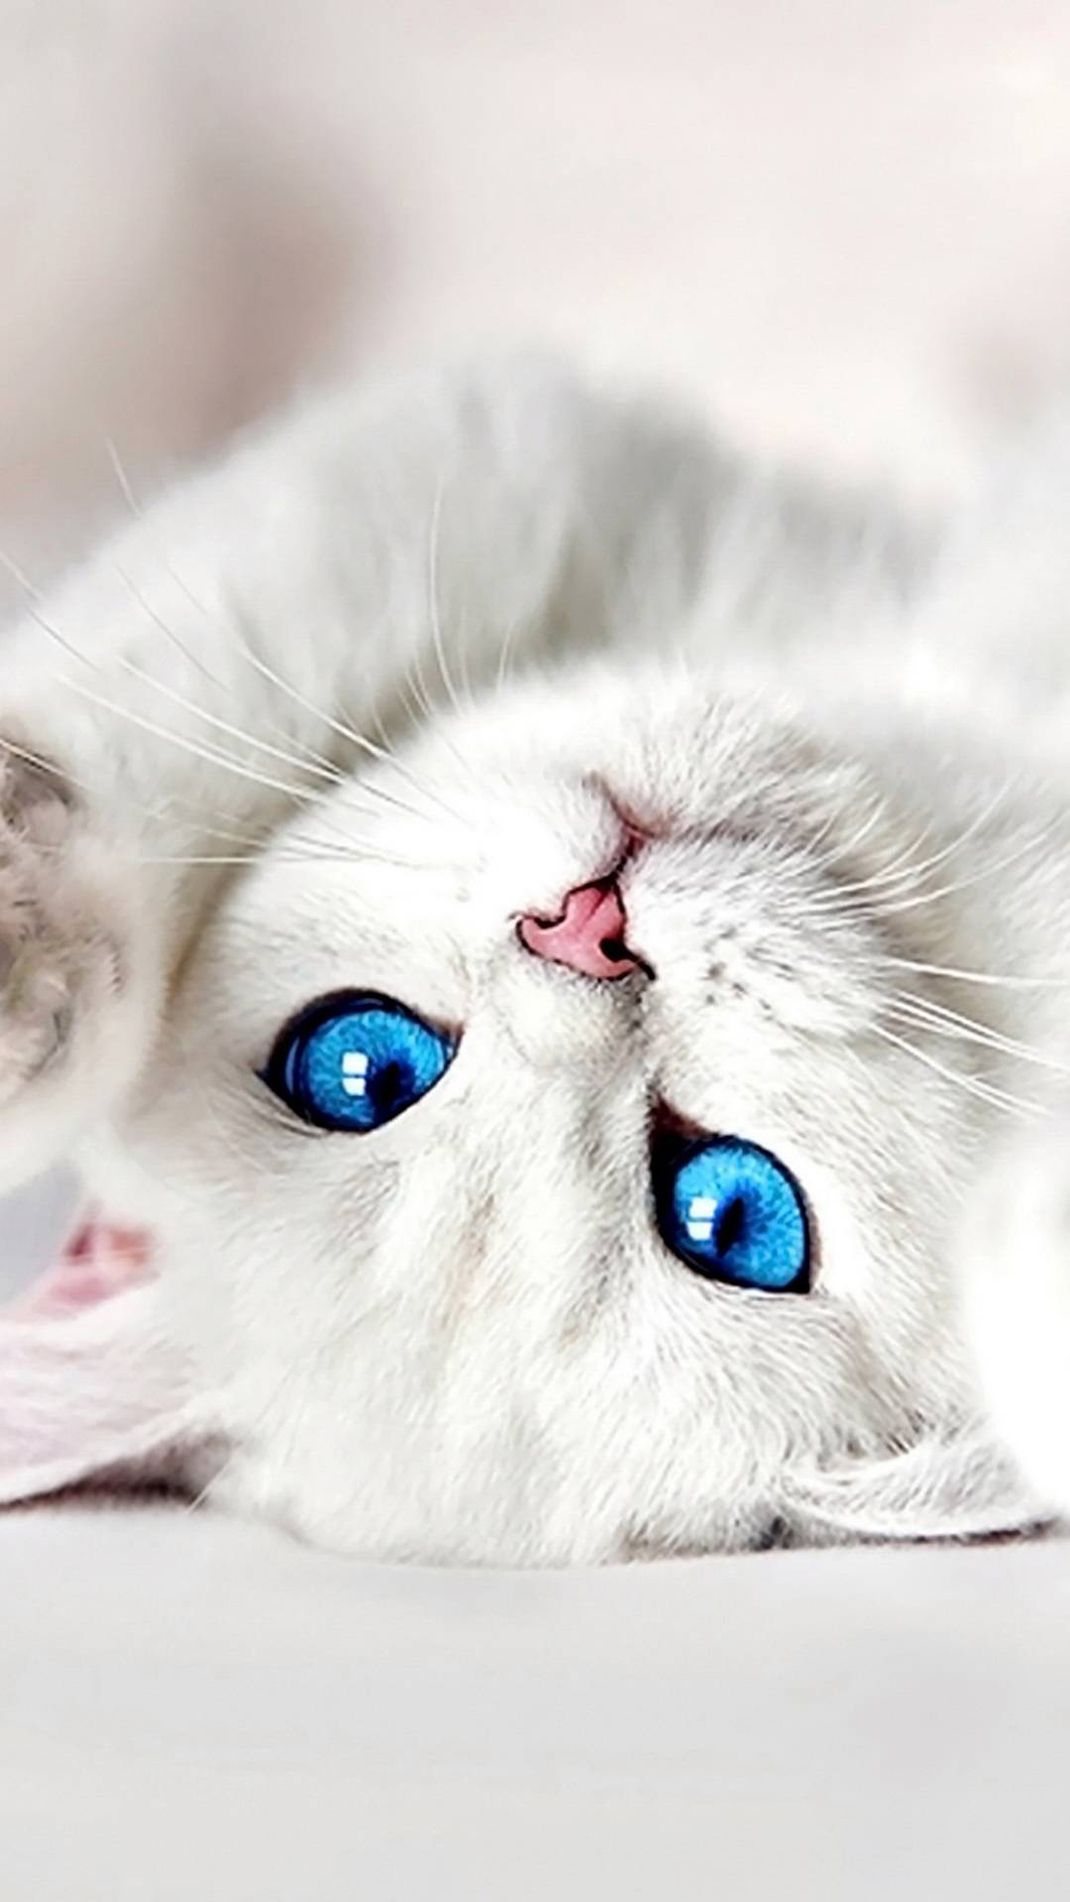 Lovey White Kitten Hd Wallpaper Download Hd In Link In 2020 Cute Cats Cute Cats And Kittens Beautiful Cats